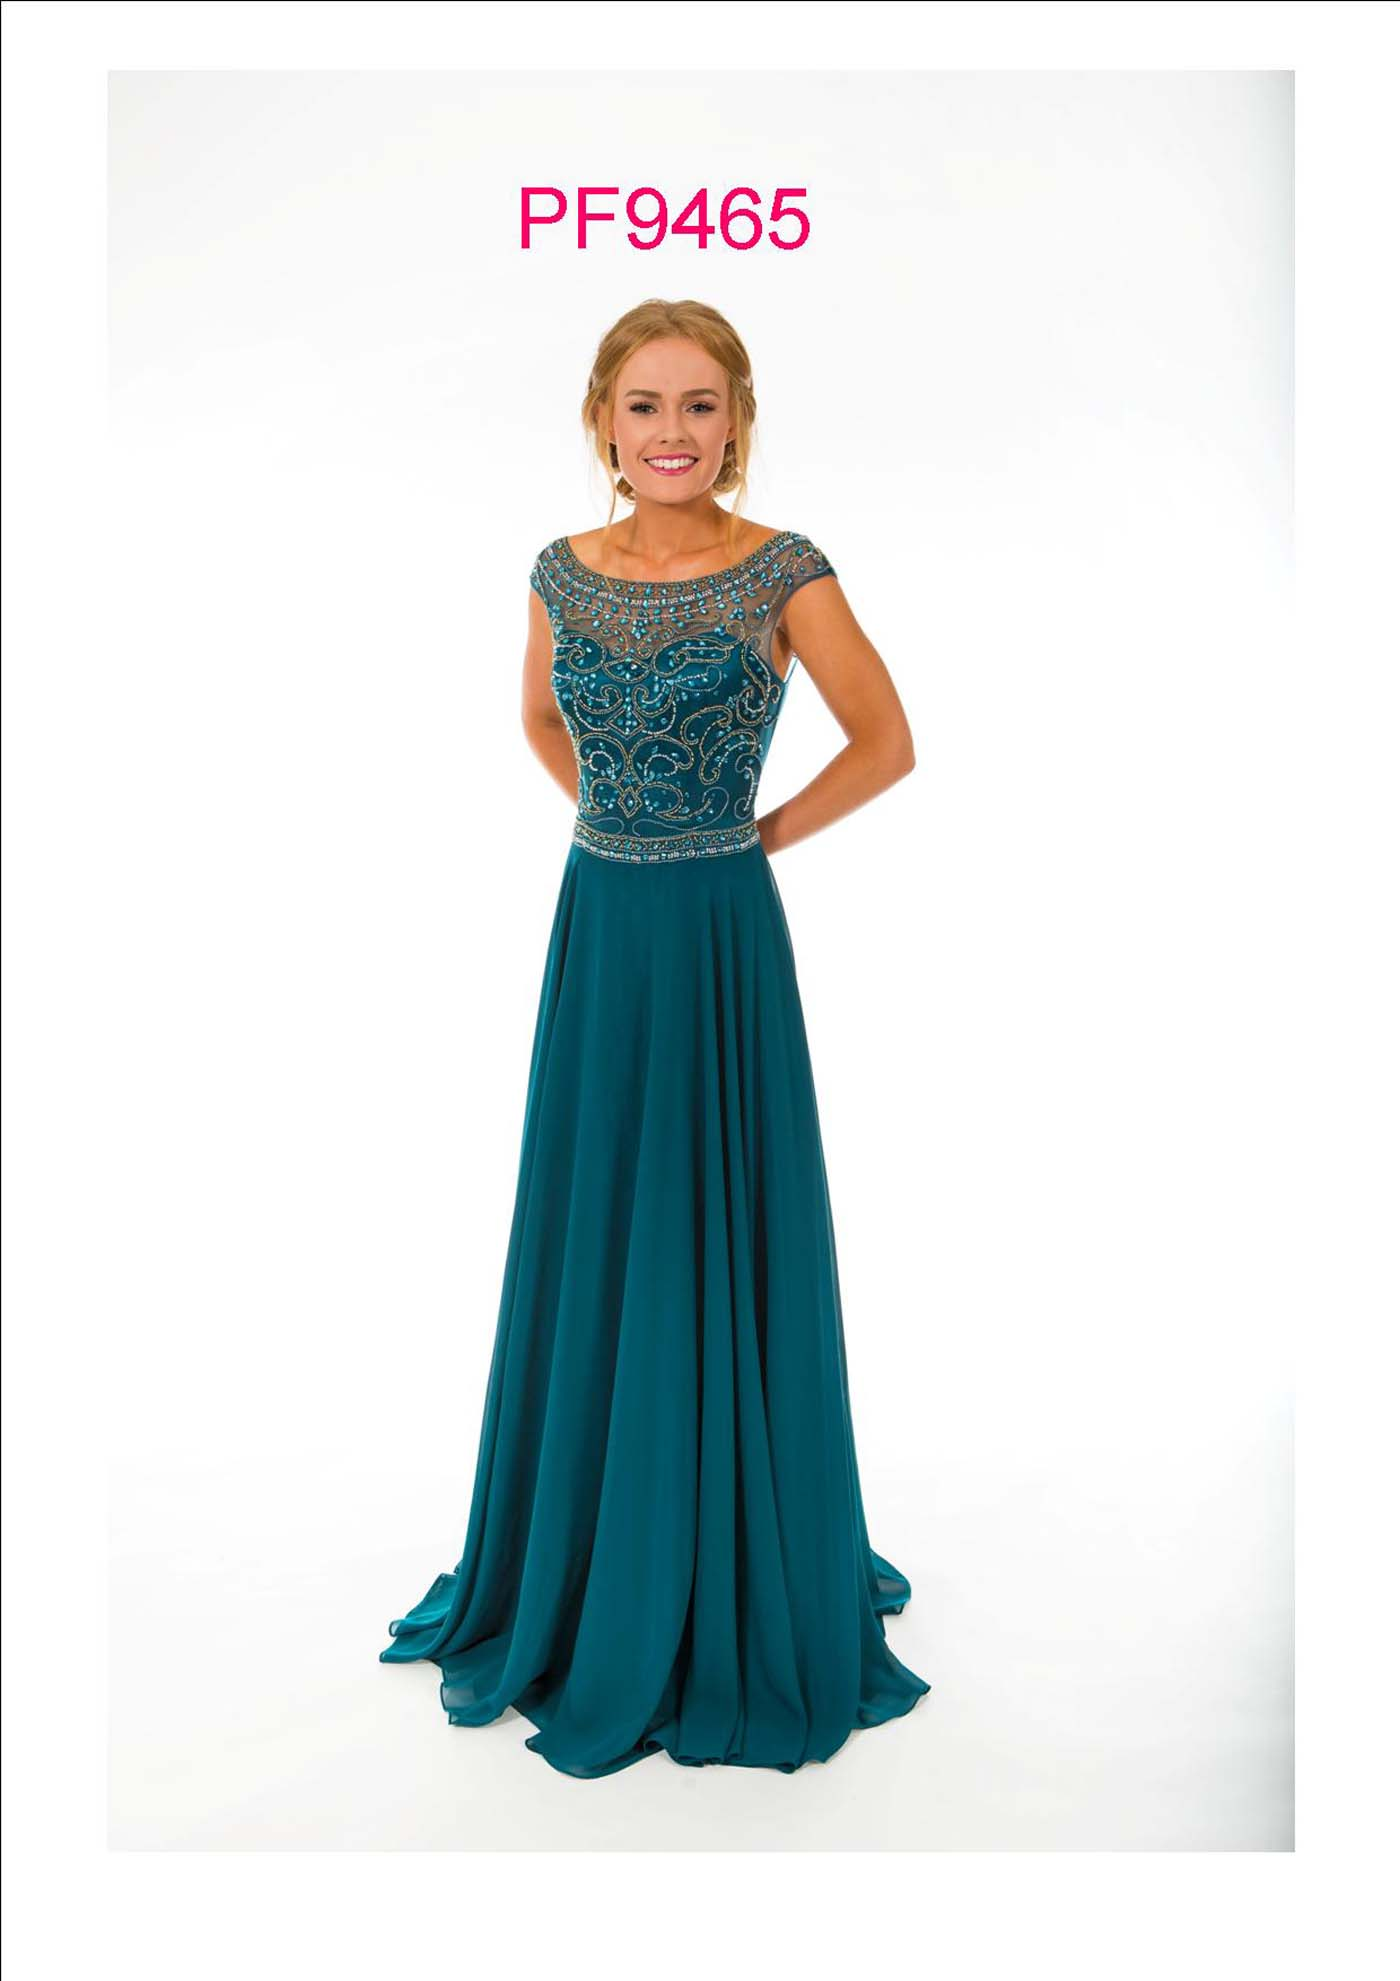 Prom girl wearing chiffon gown with full skirt and silver beaded bodice, high front neck and low v back.